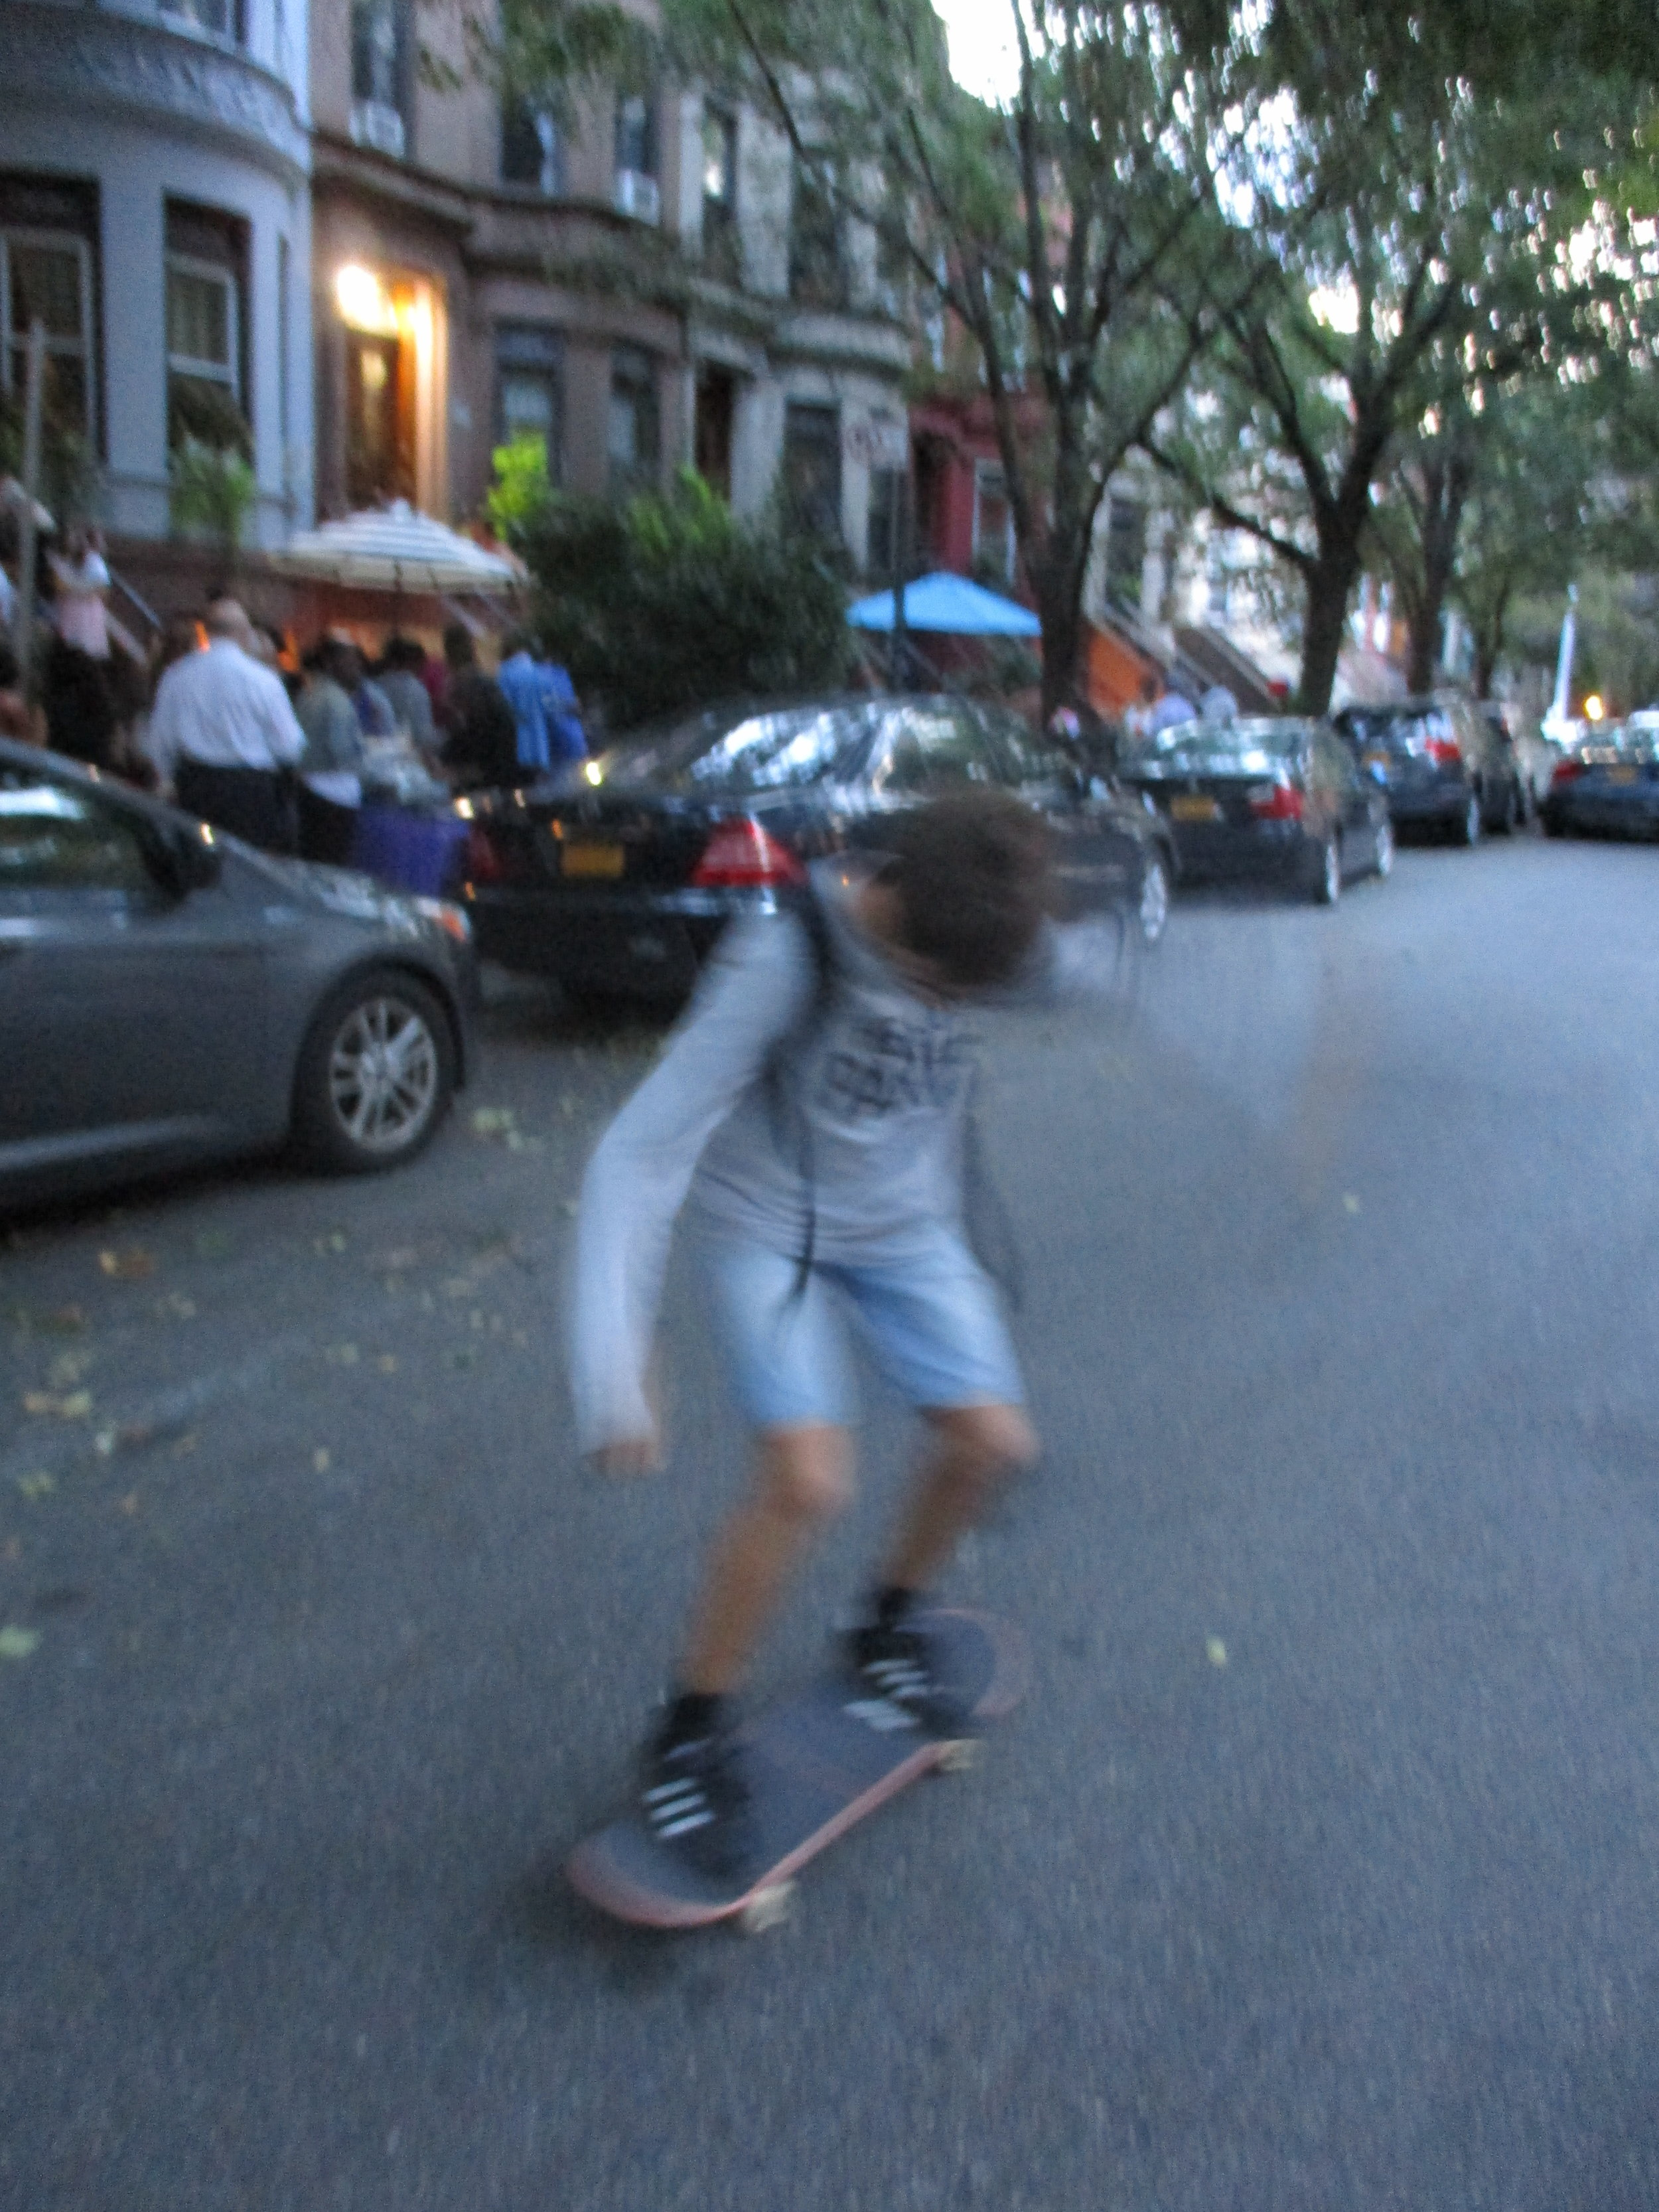 Successful landing after a jump on a skateboard on Lincoln Place